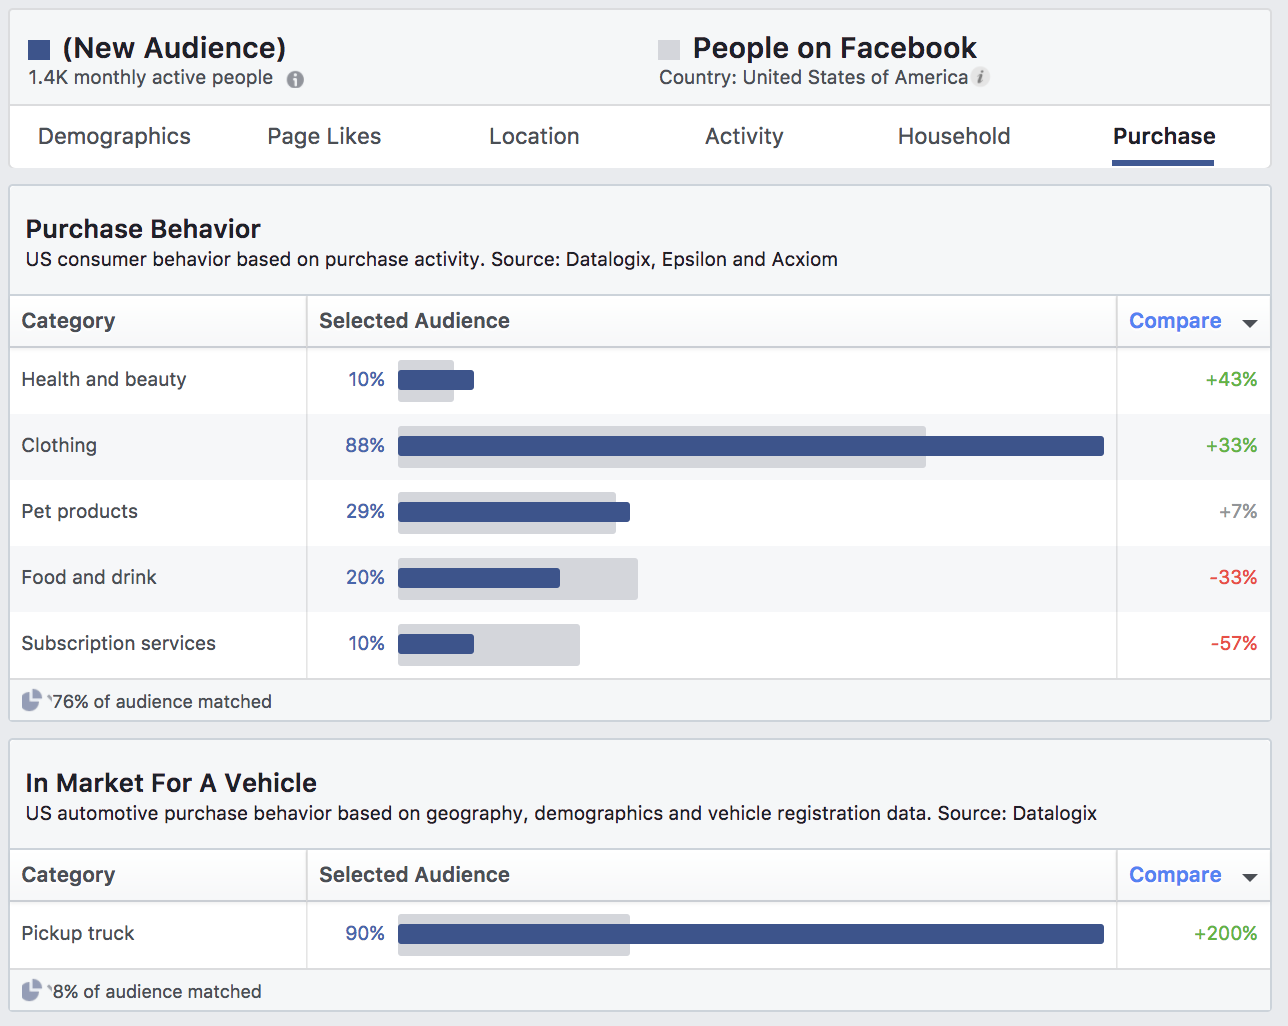 Facebook Audiences Purchase Behavior Insights